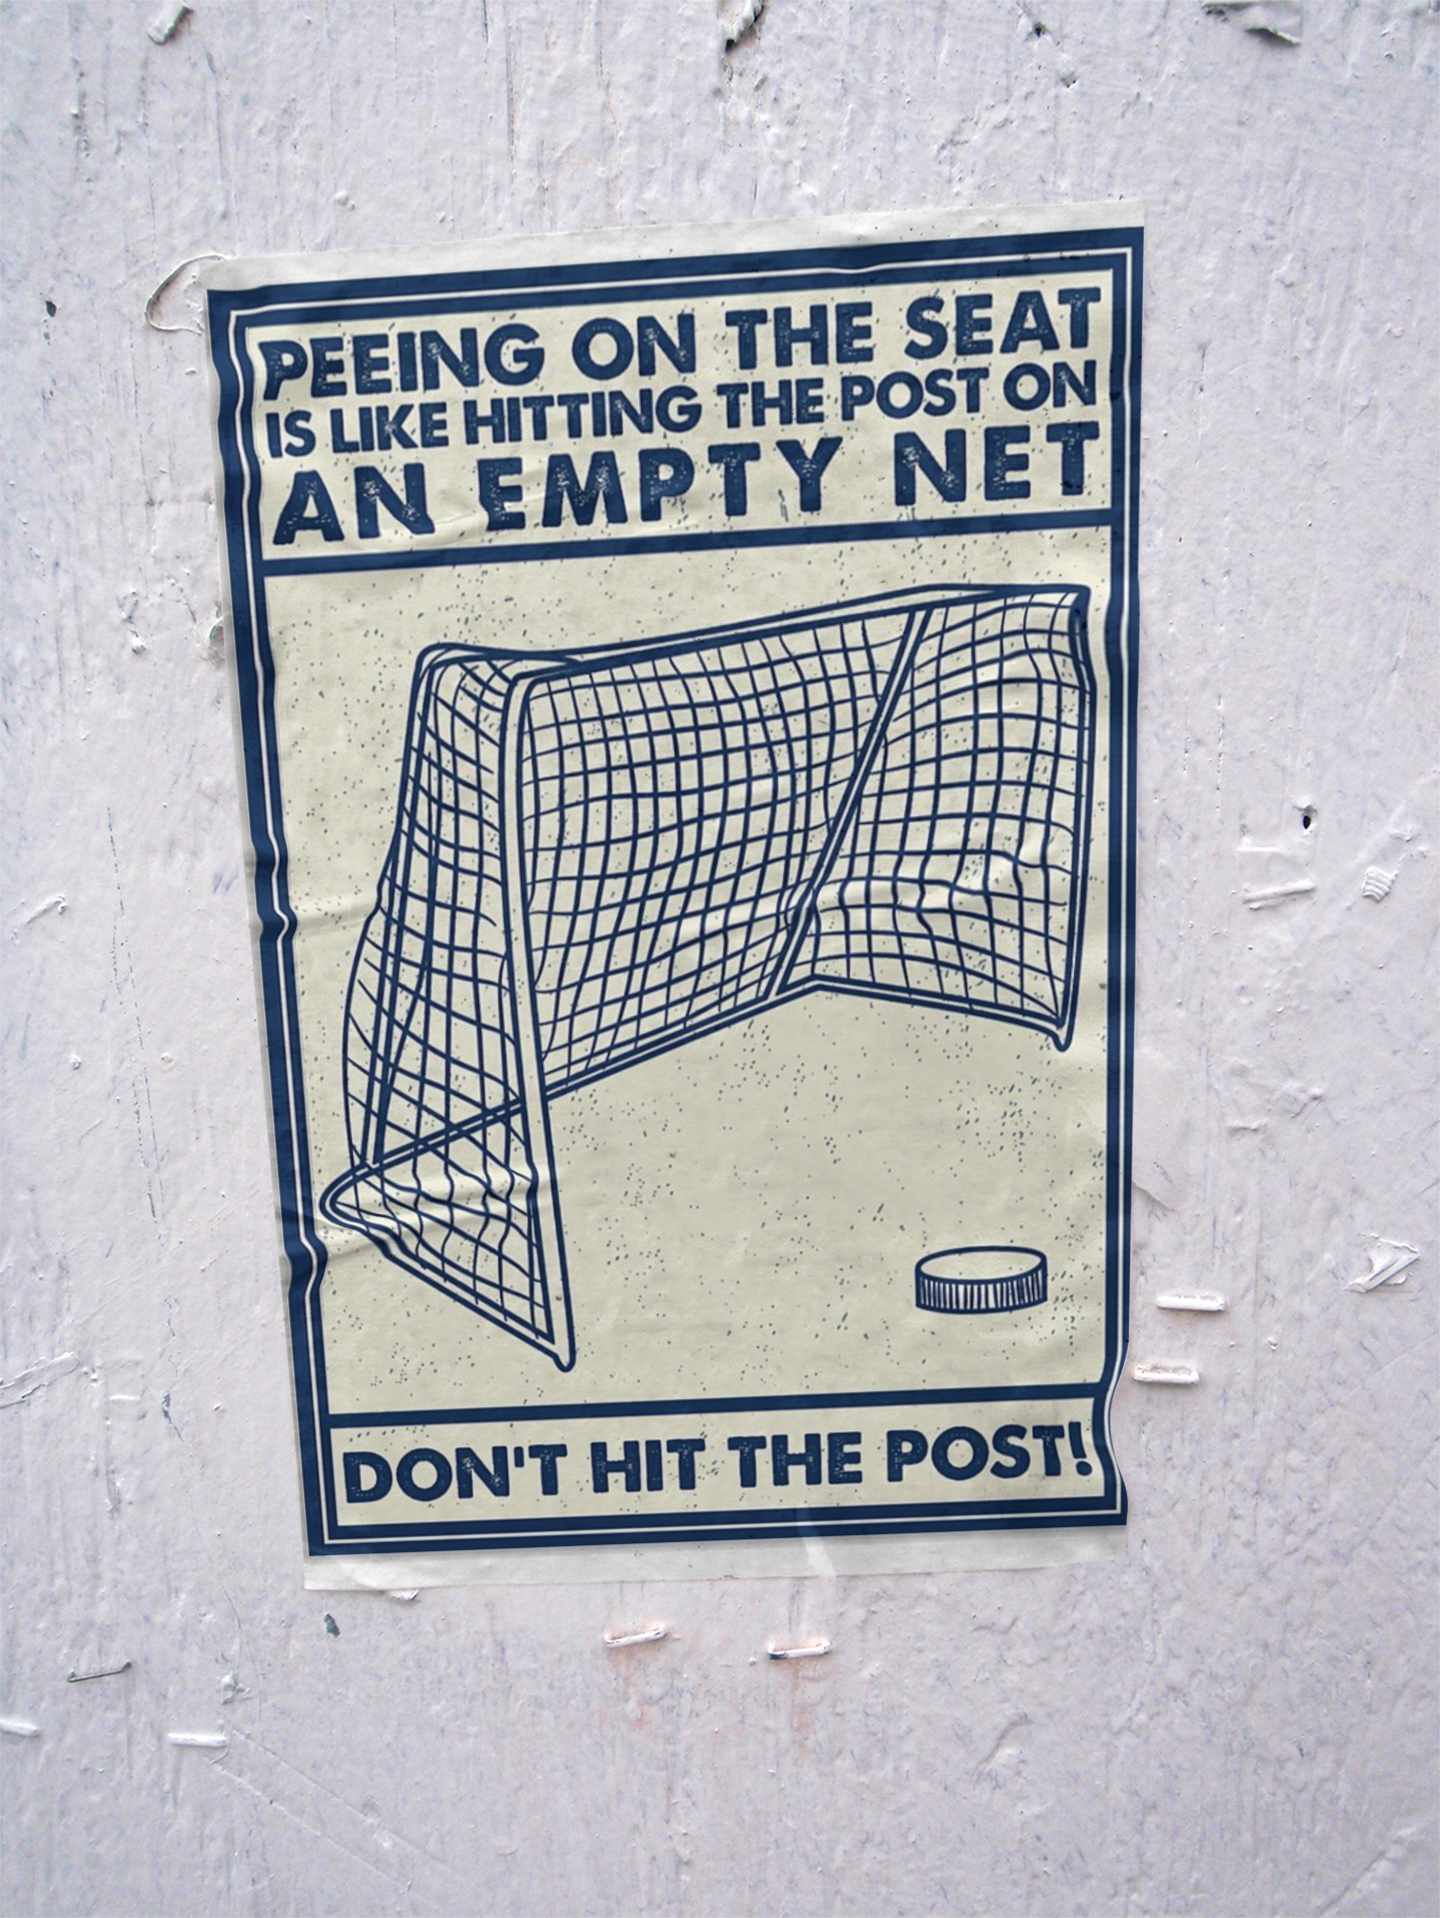 Hockey peeing on the seat don't hit the post poster